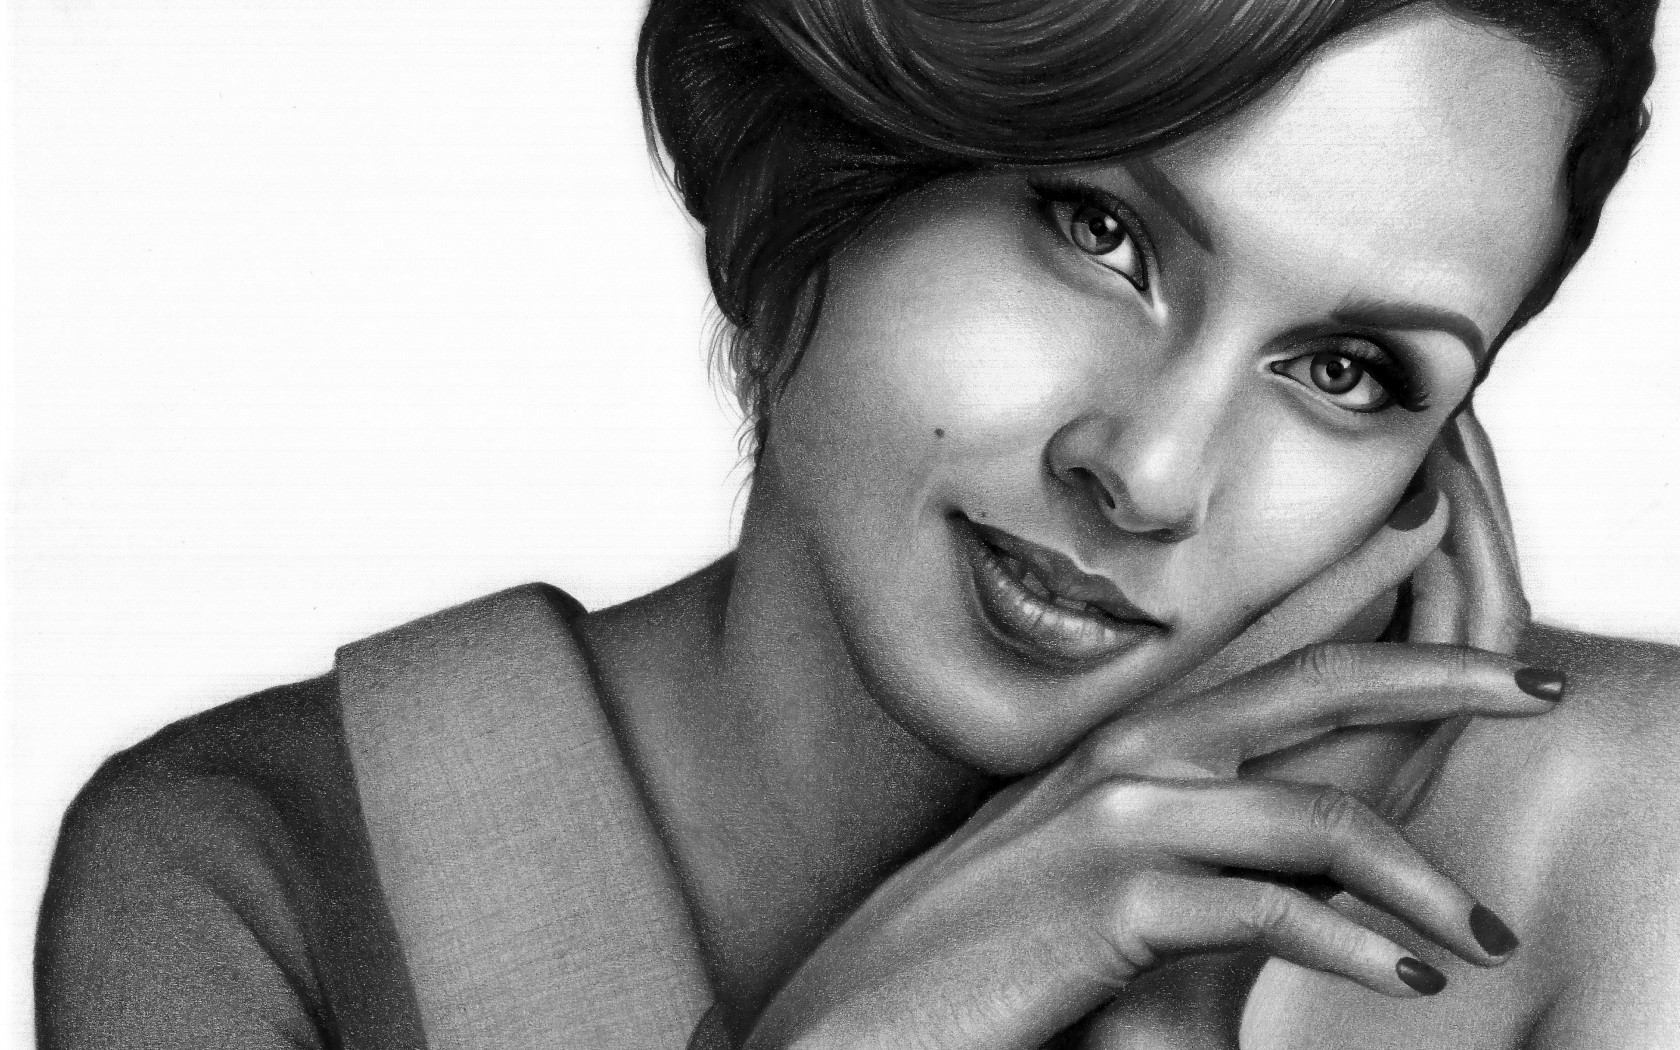 The drawn portrait of Alicia Keys wallpaper 1680x1050